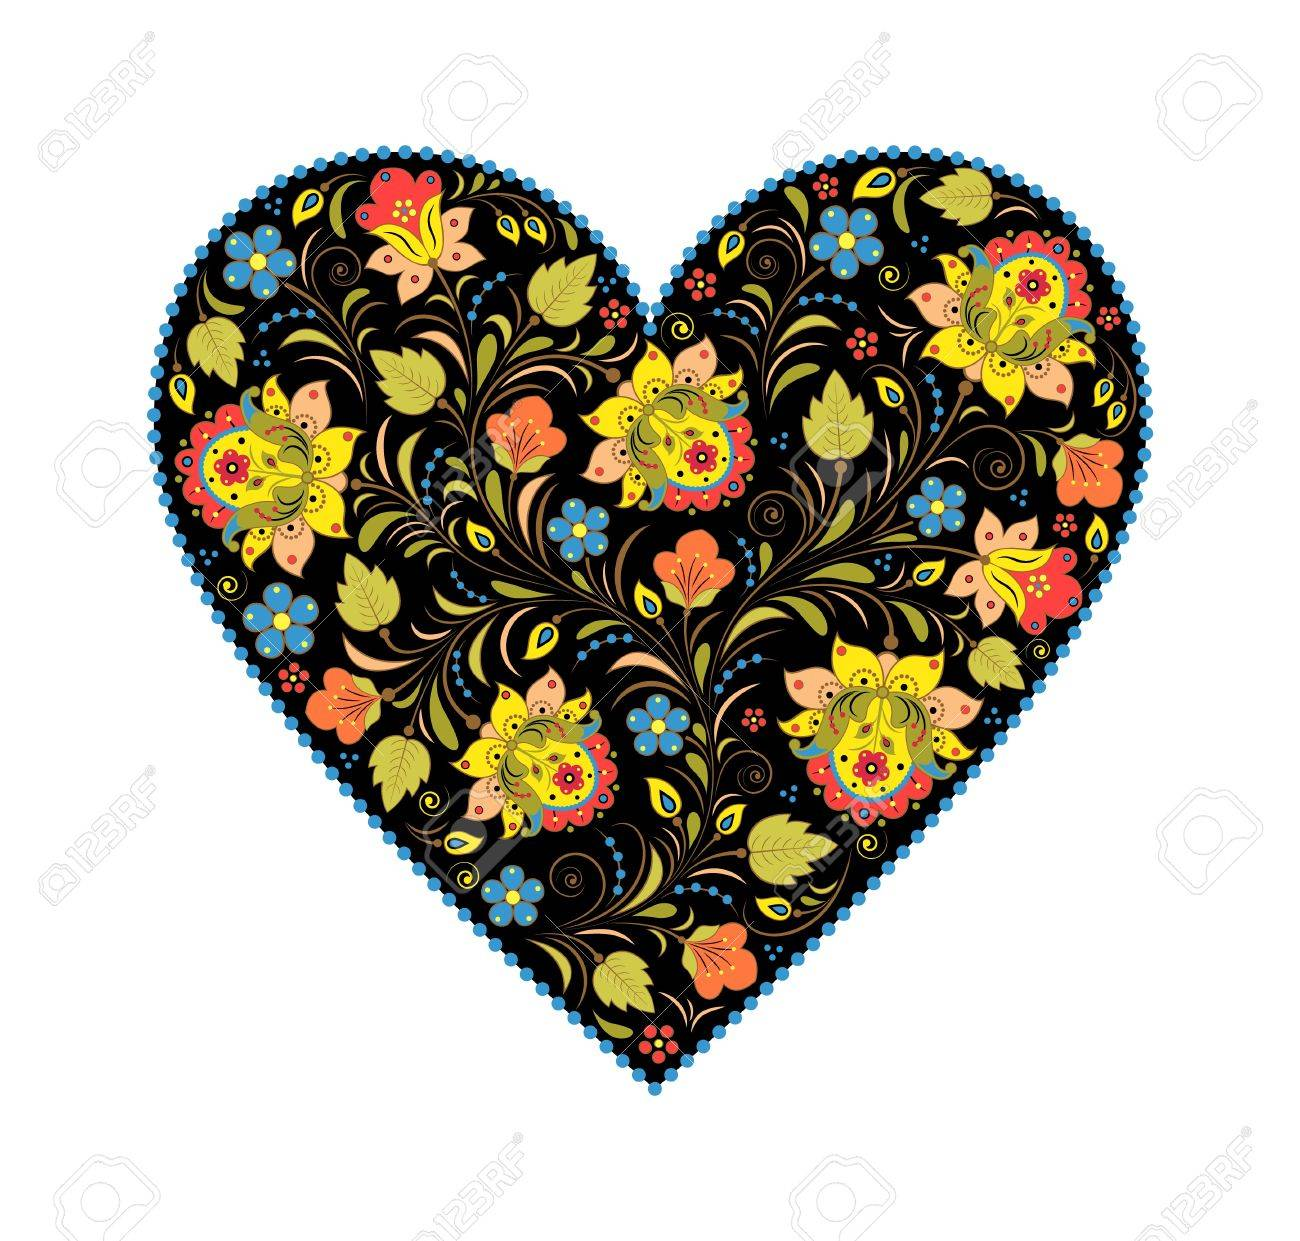 illustration of floral heart with traditional russian pattern.Khokhloma. Stock Vector - 16481805